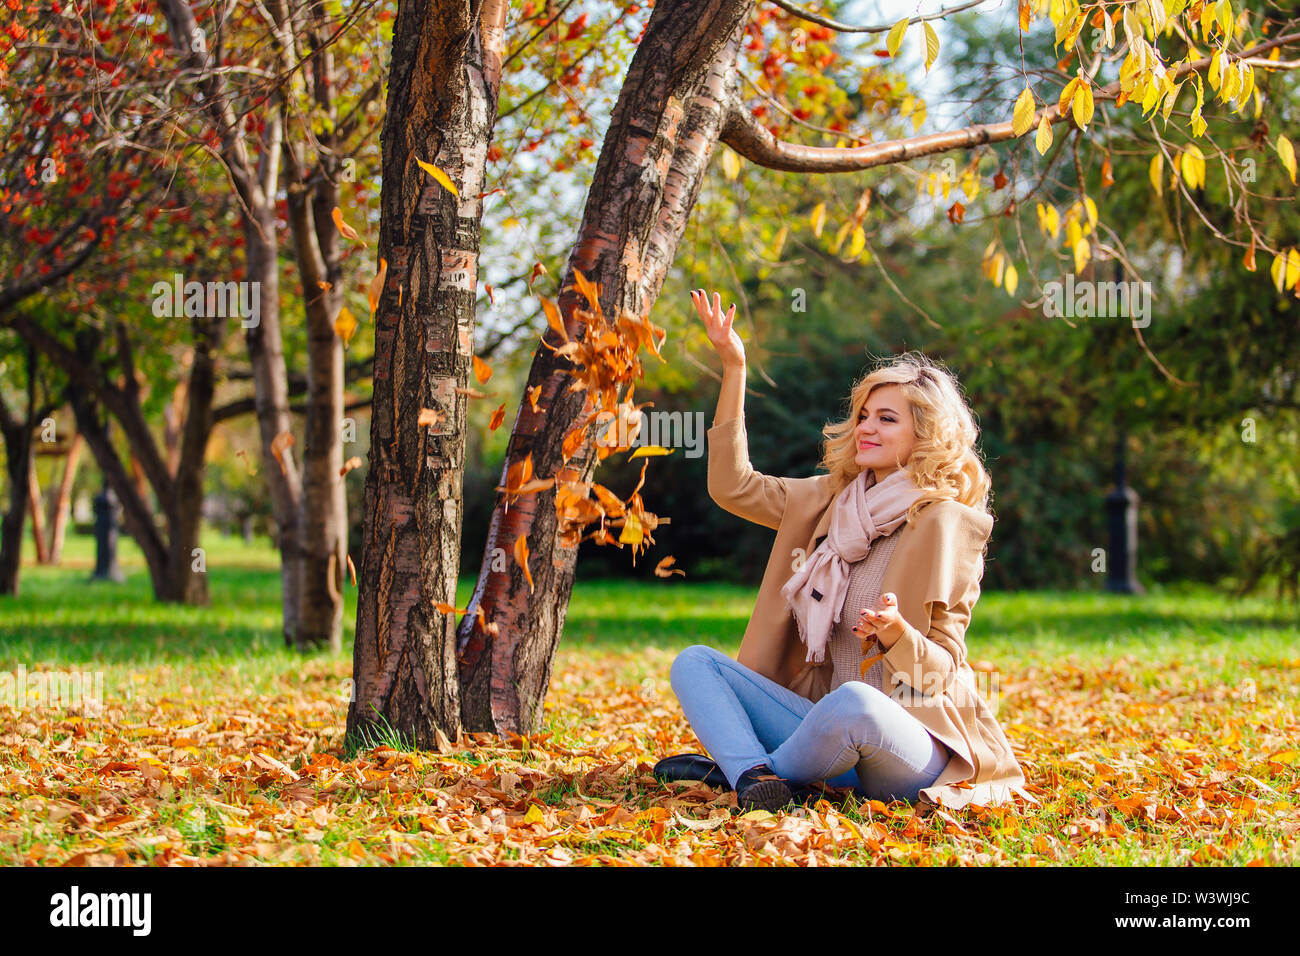 Young beautiful blonde woman throwing up fallen autumn leaves over her head sitting on the ground - Stock Image